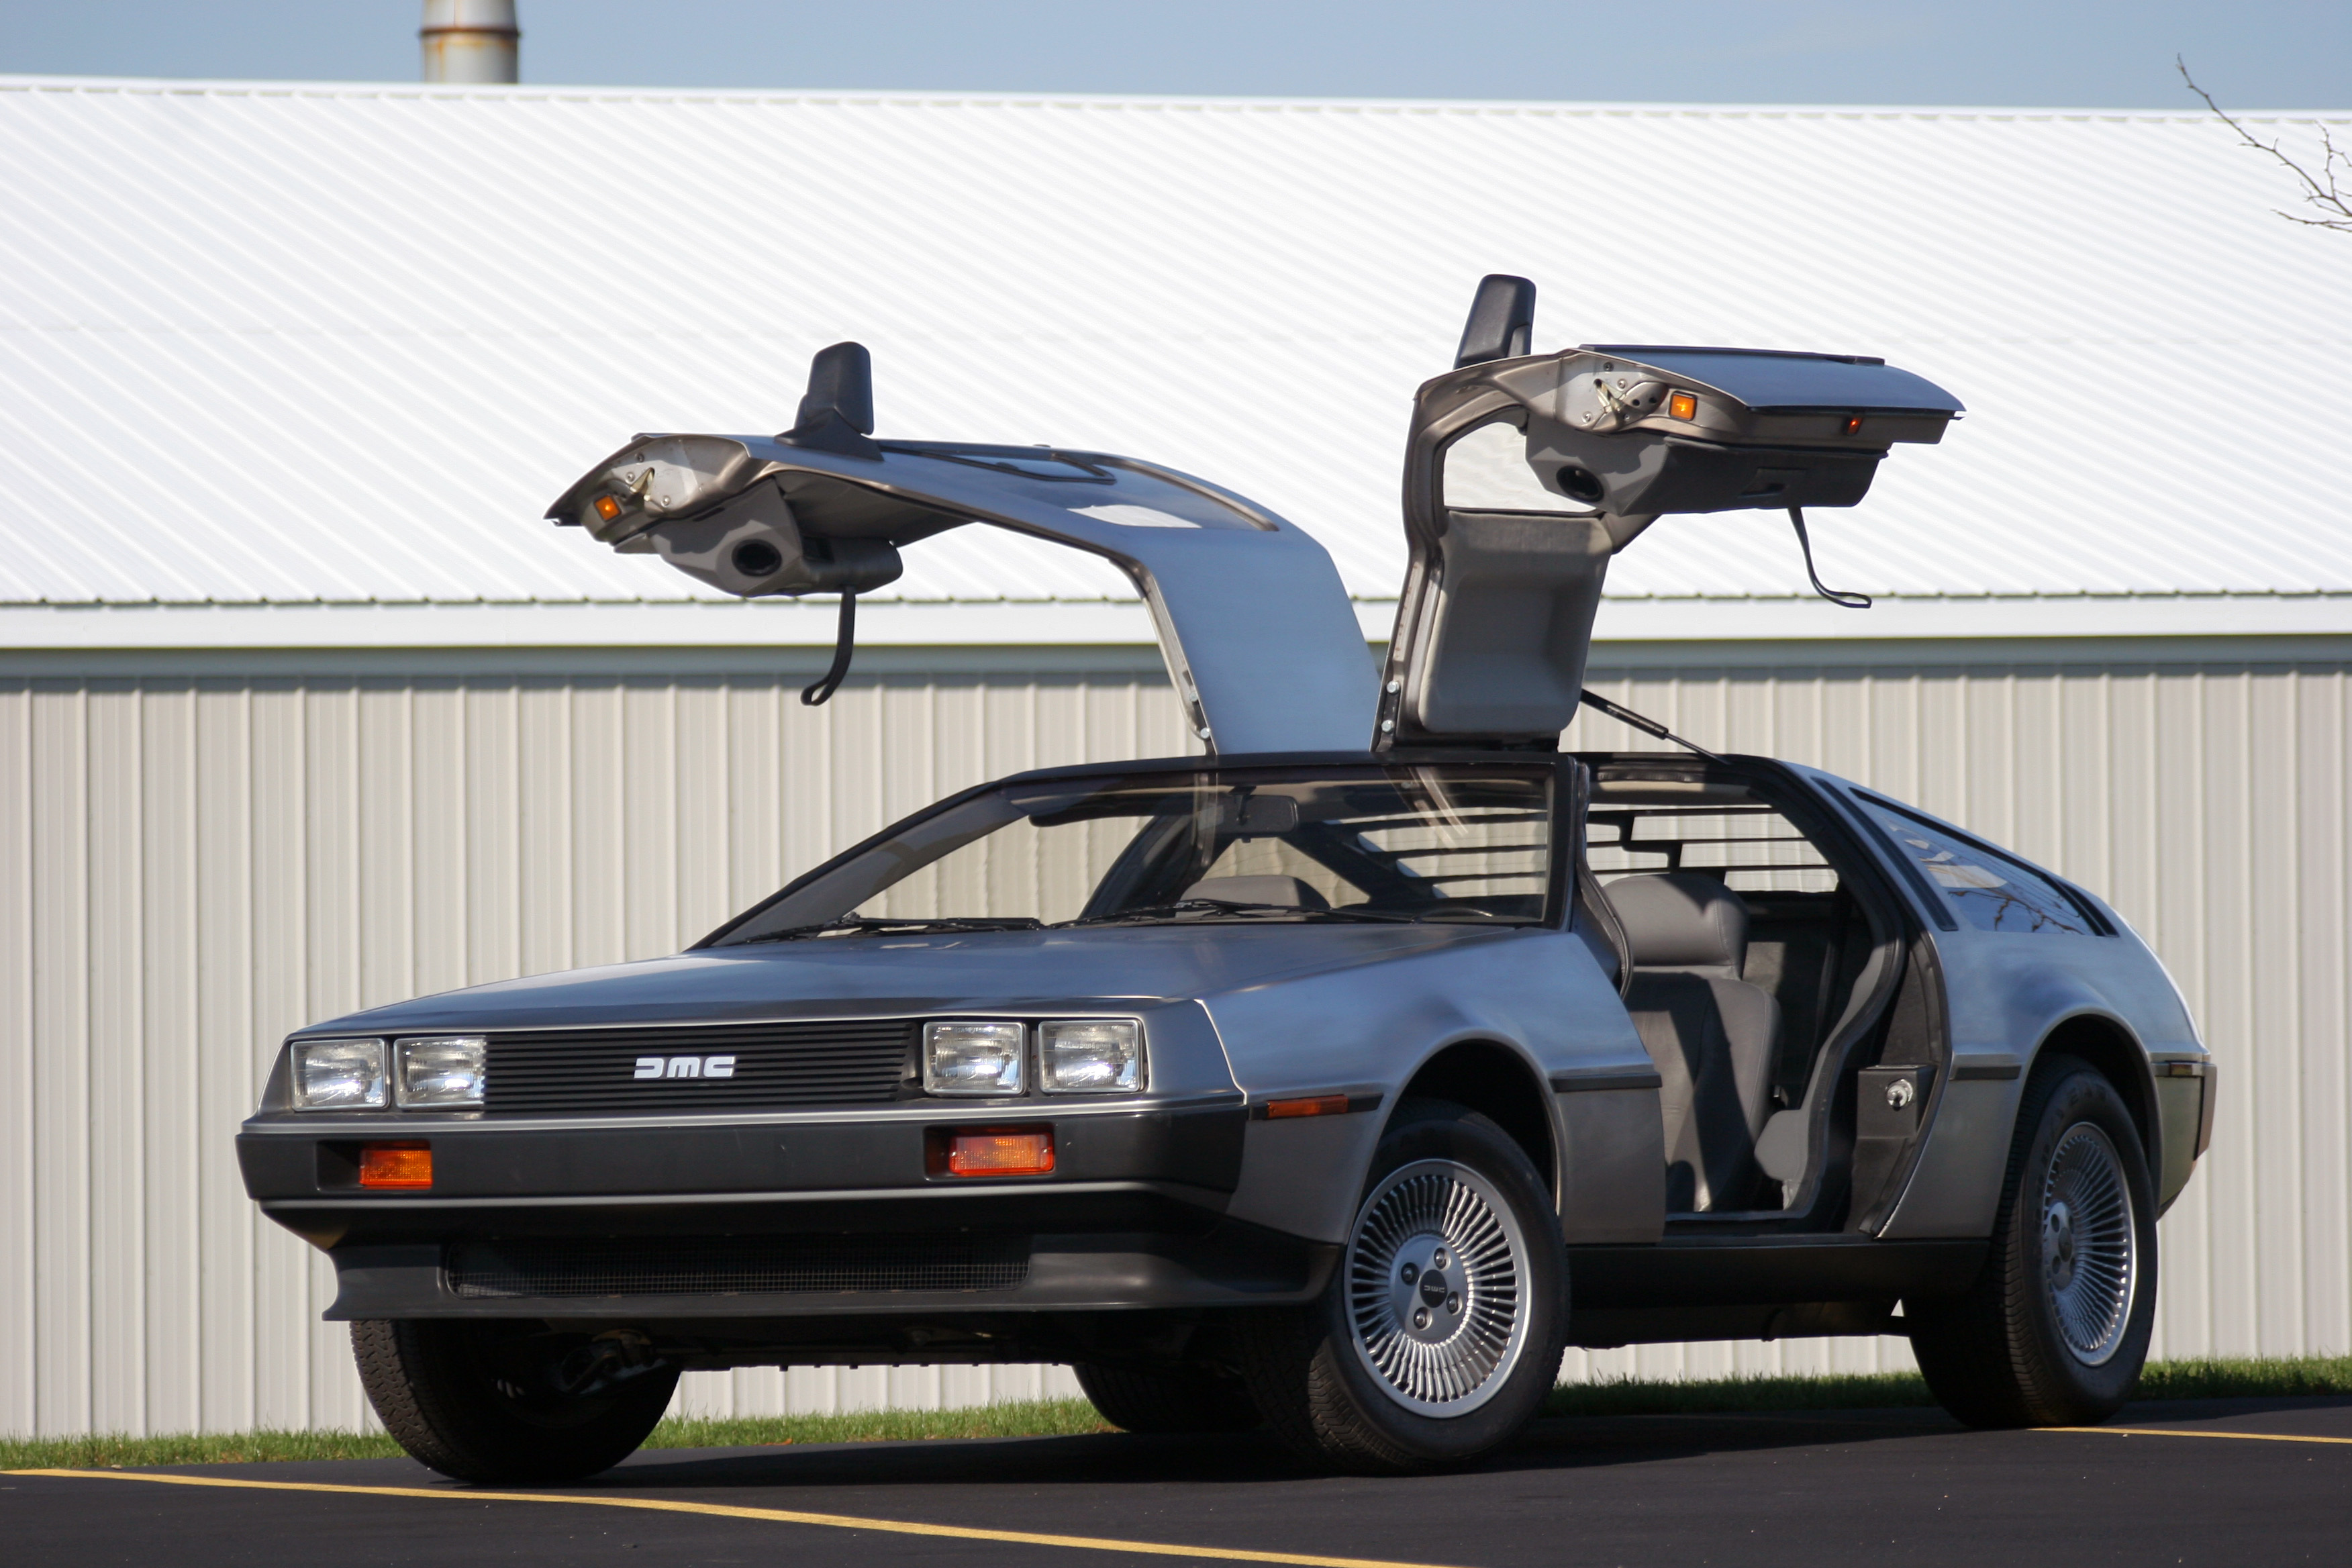 Delorean DMC-12 1982 #5